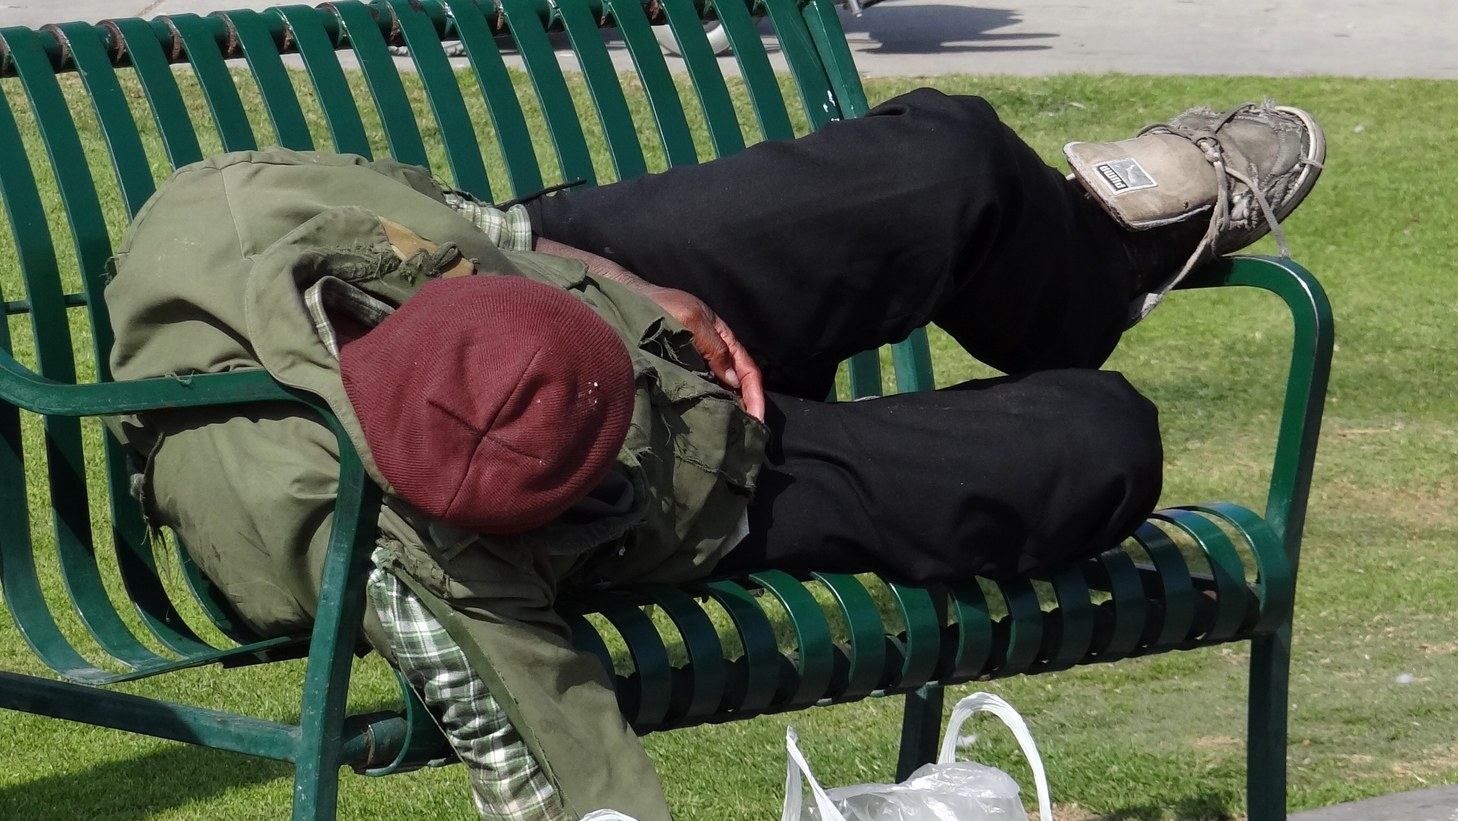 A homeless man naps on a bench in Santa Monica.